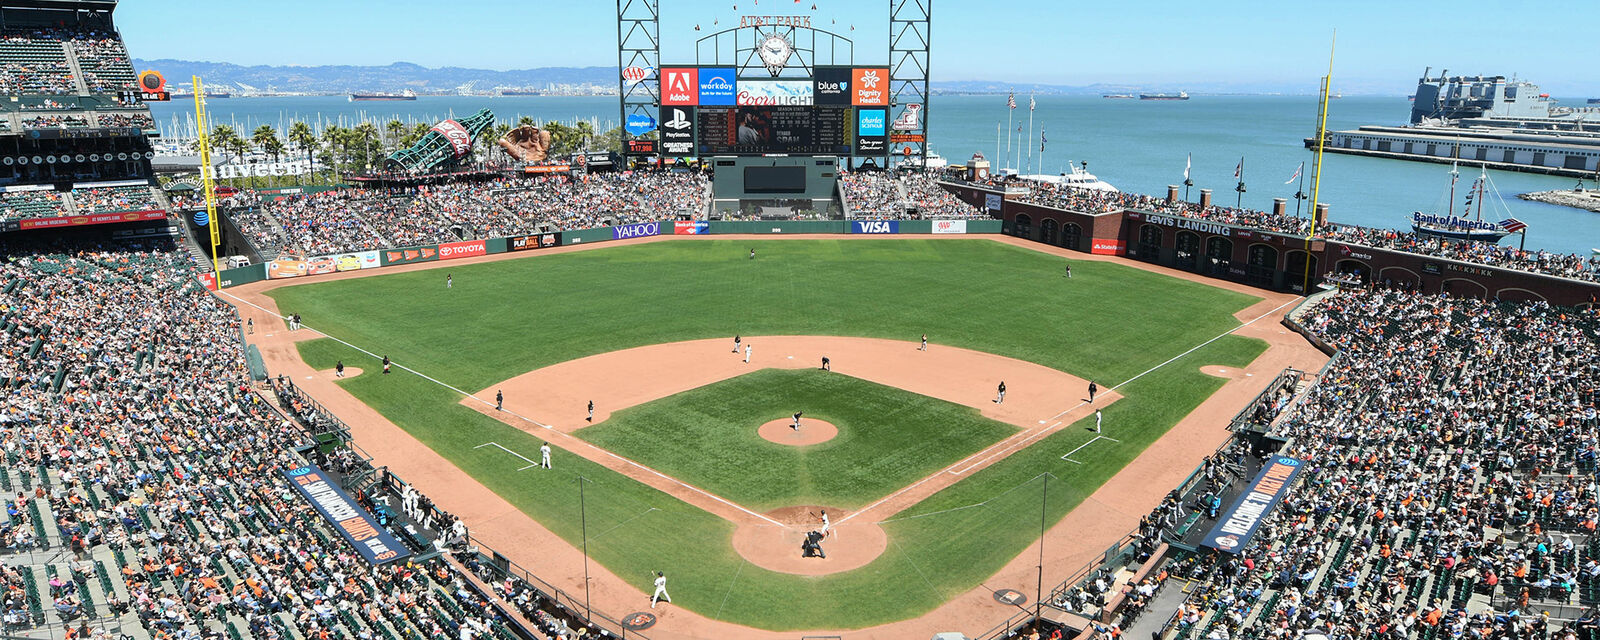 Milwaukee Brewers at San Francisco Giants